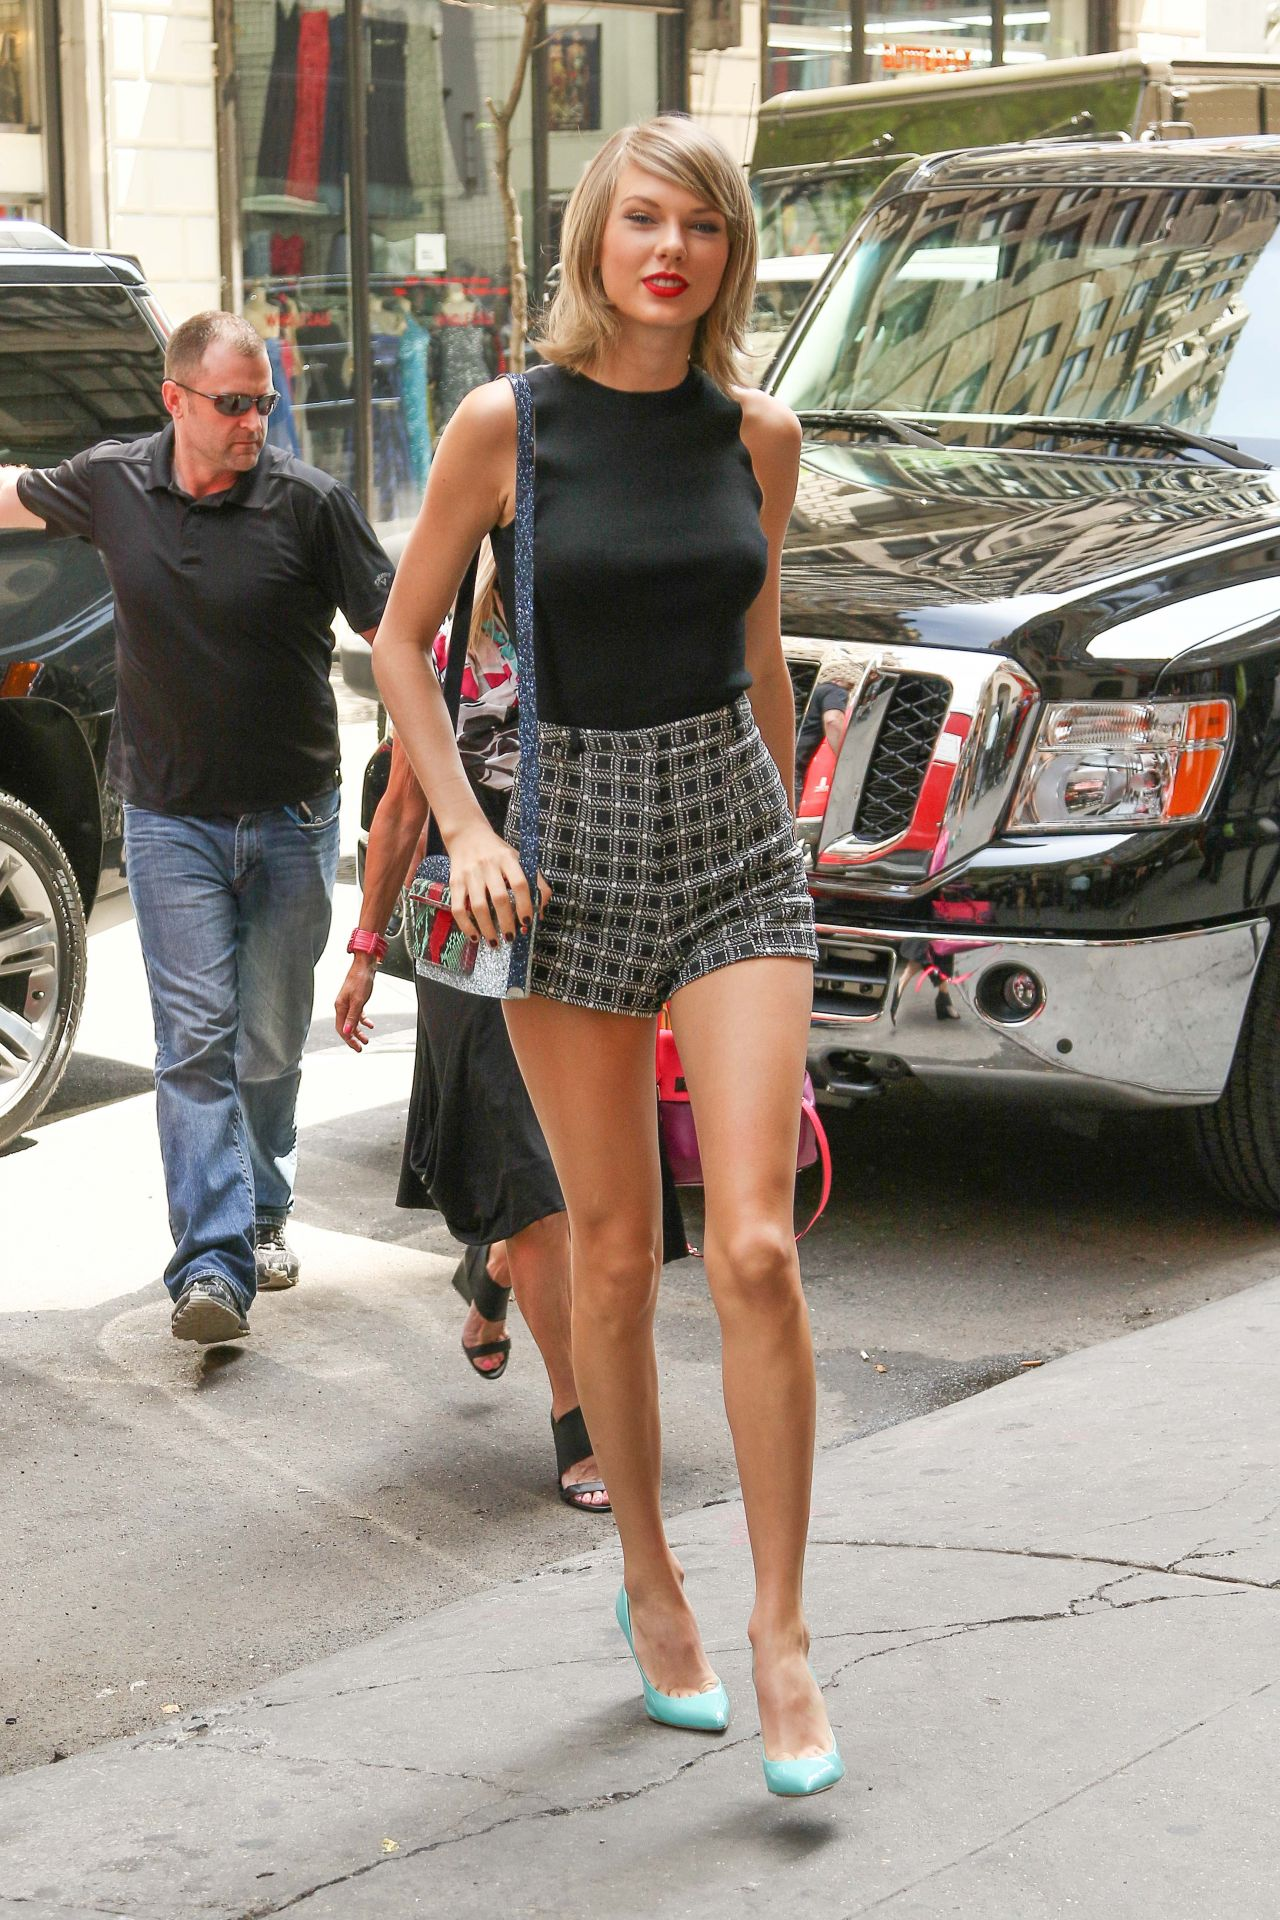 swift shows off her legs in a pair of short shorts - new york city